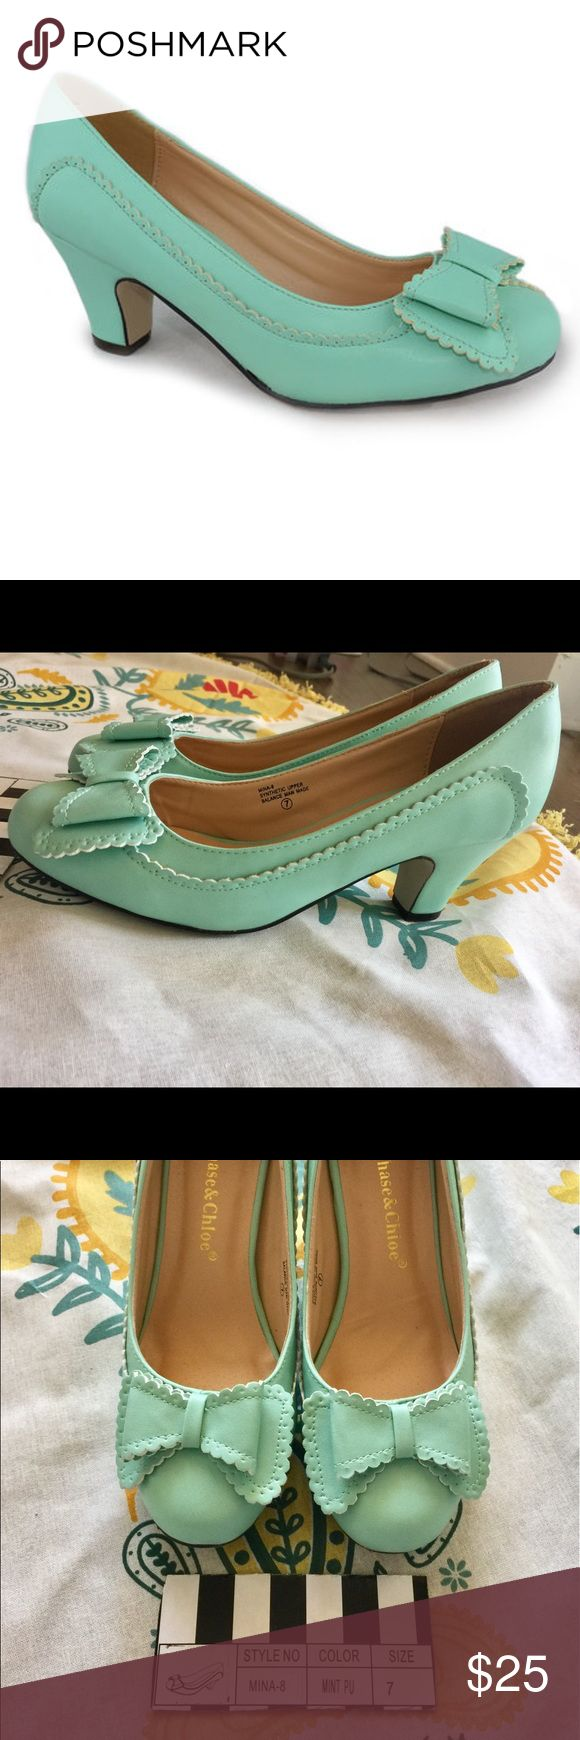 Mina Mint Pump with bow A T-strap buckle secures this pair with an adjustable fit, while a chunky heel offers a stable boost of height to your high-fashion ensembles. Note: these were worn twice.   2.5'' heel Buckle closure Man-made Imported Chase & Chloe  Shoes Heels